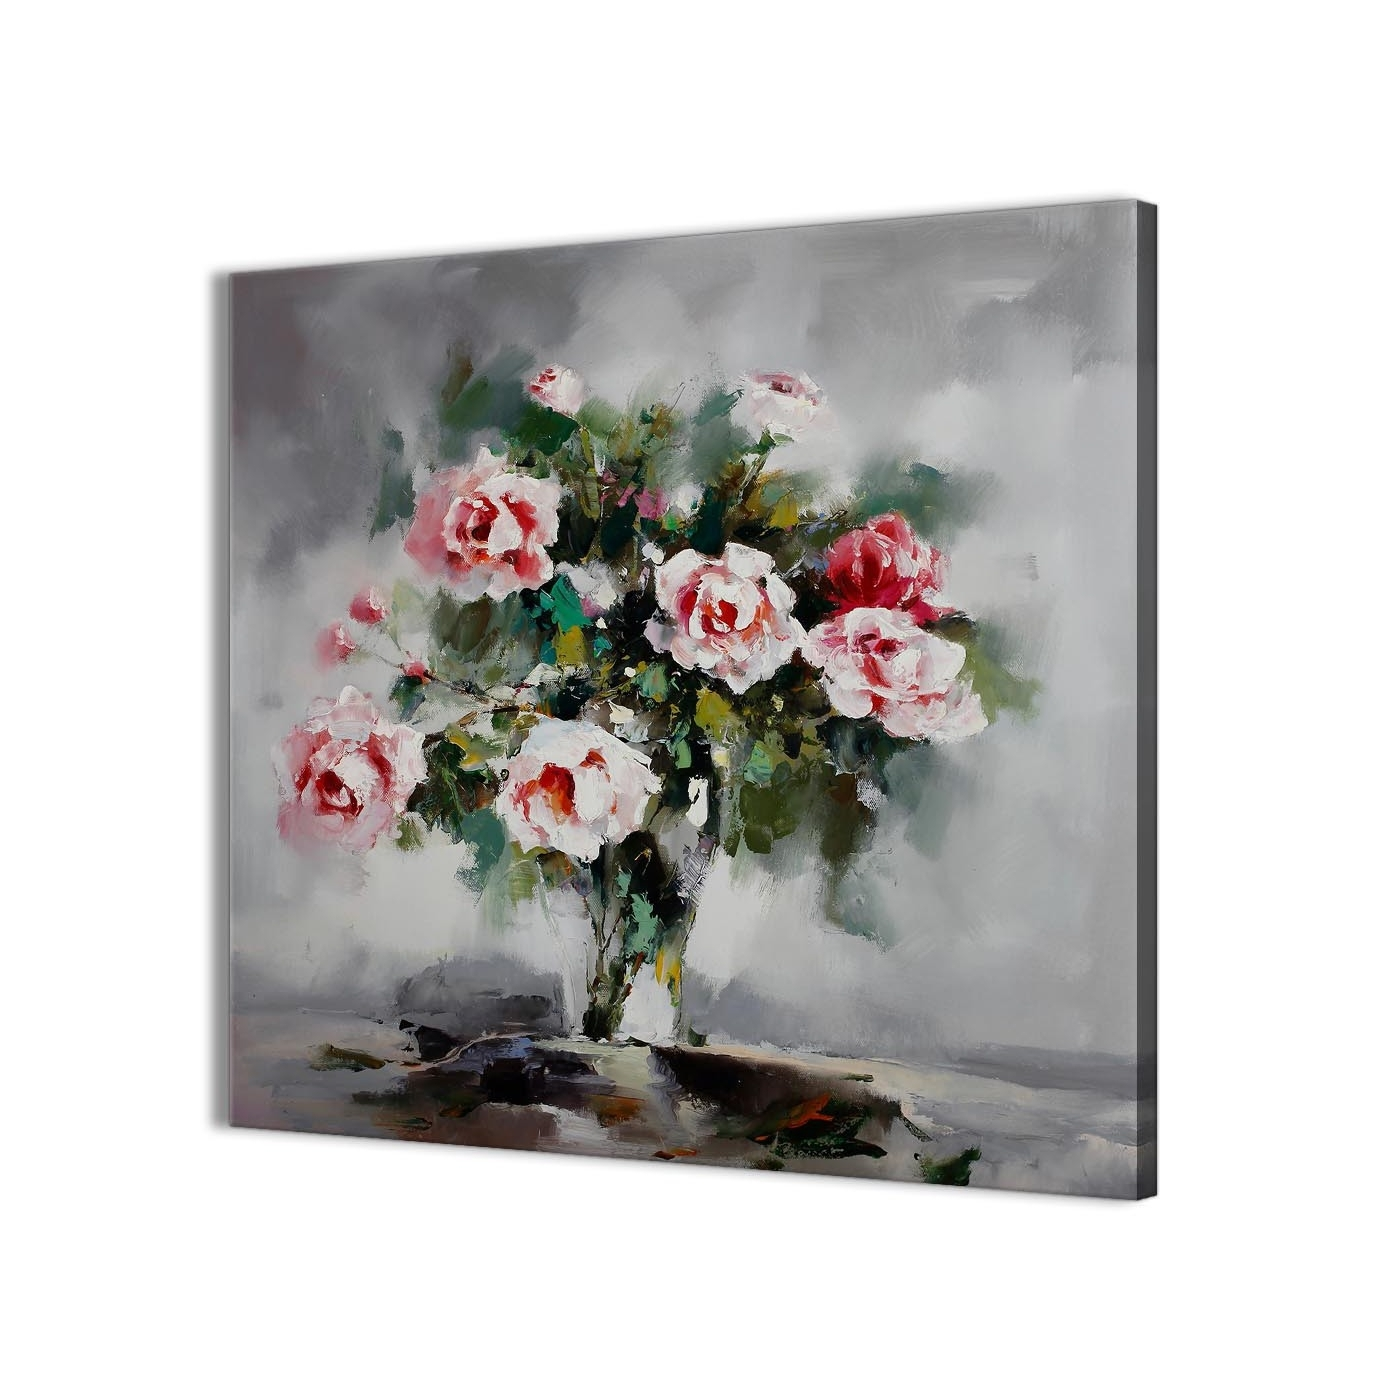 Kitchen Canvas Wall Art Intended For Most Recent Pink Grey Flowers Painting Kitchen Canvas Wall Art Accessories (View 5 of 15)